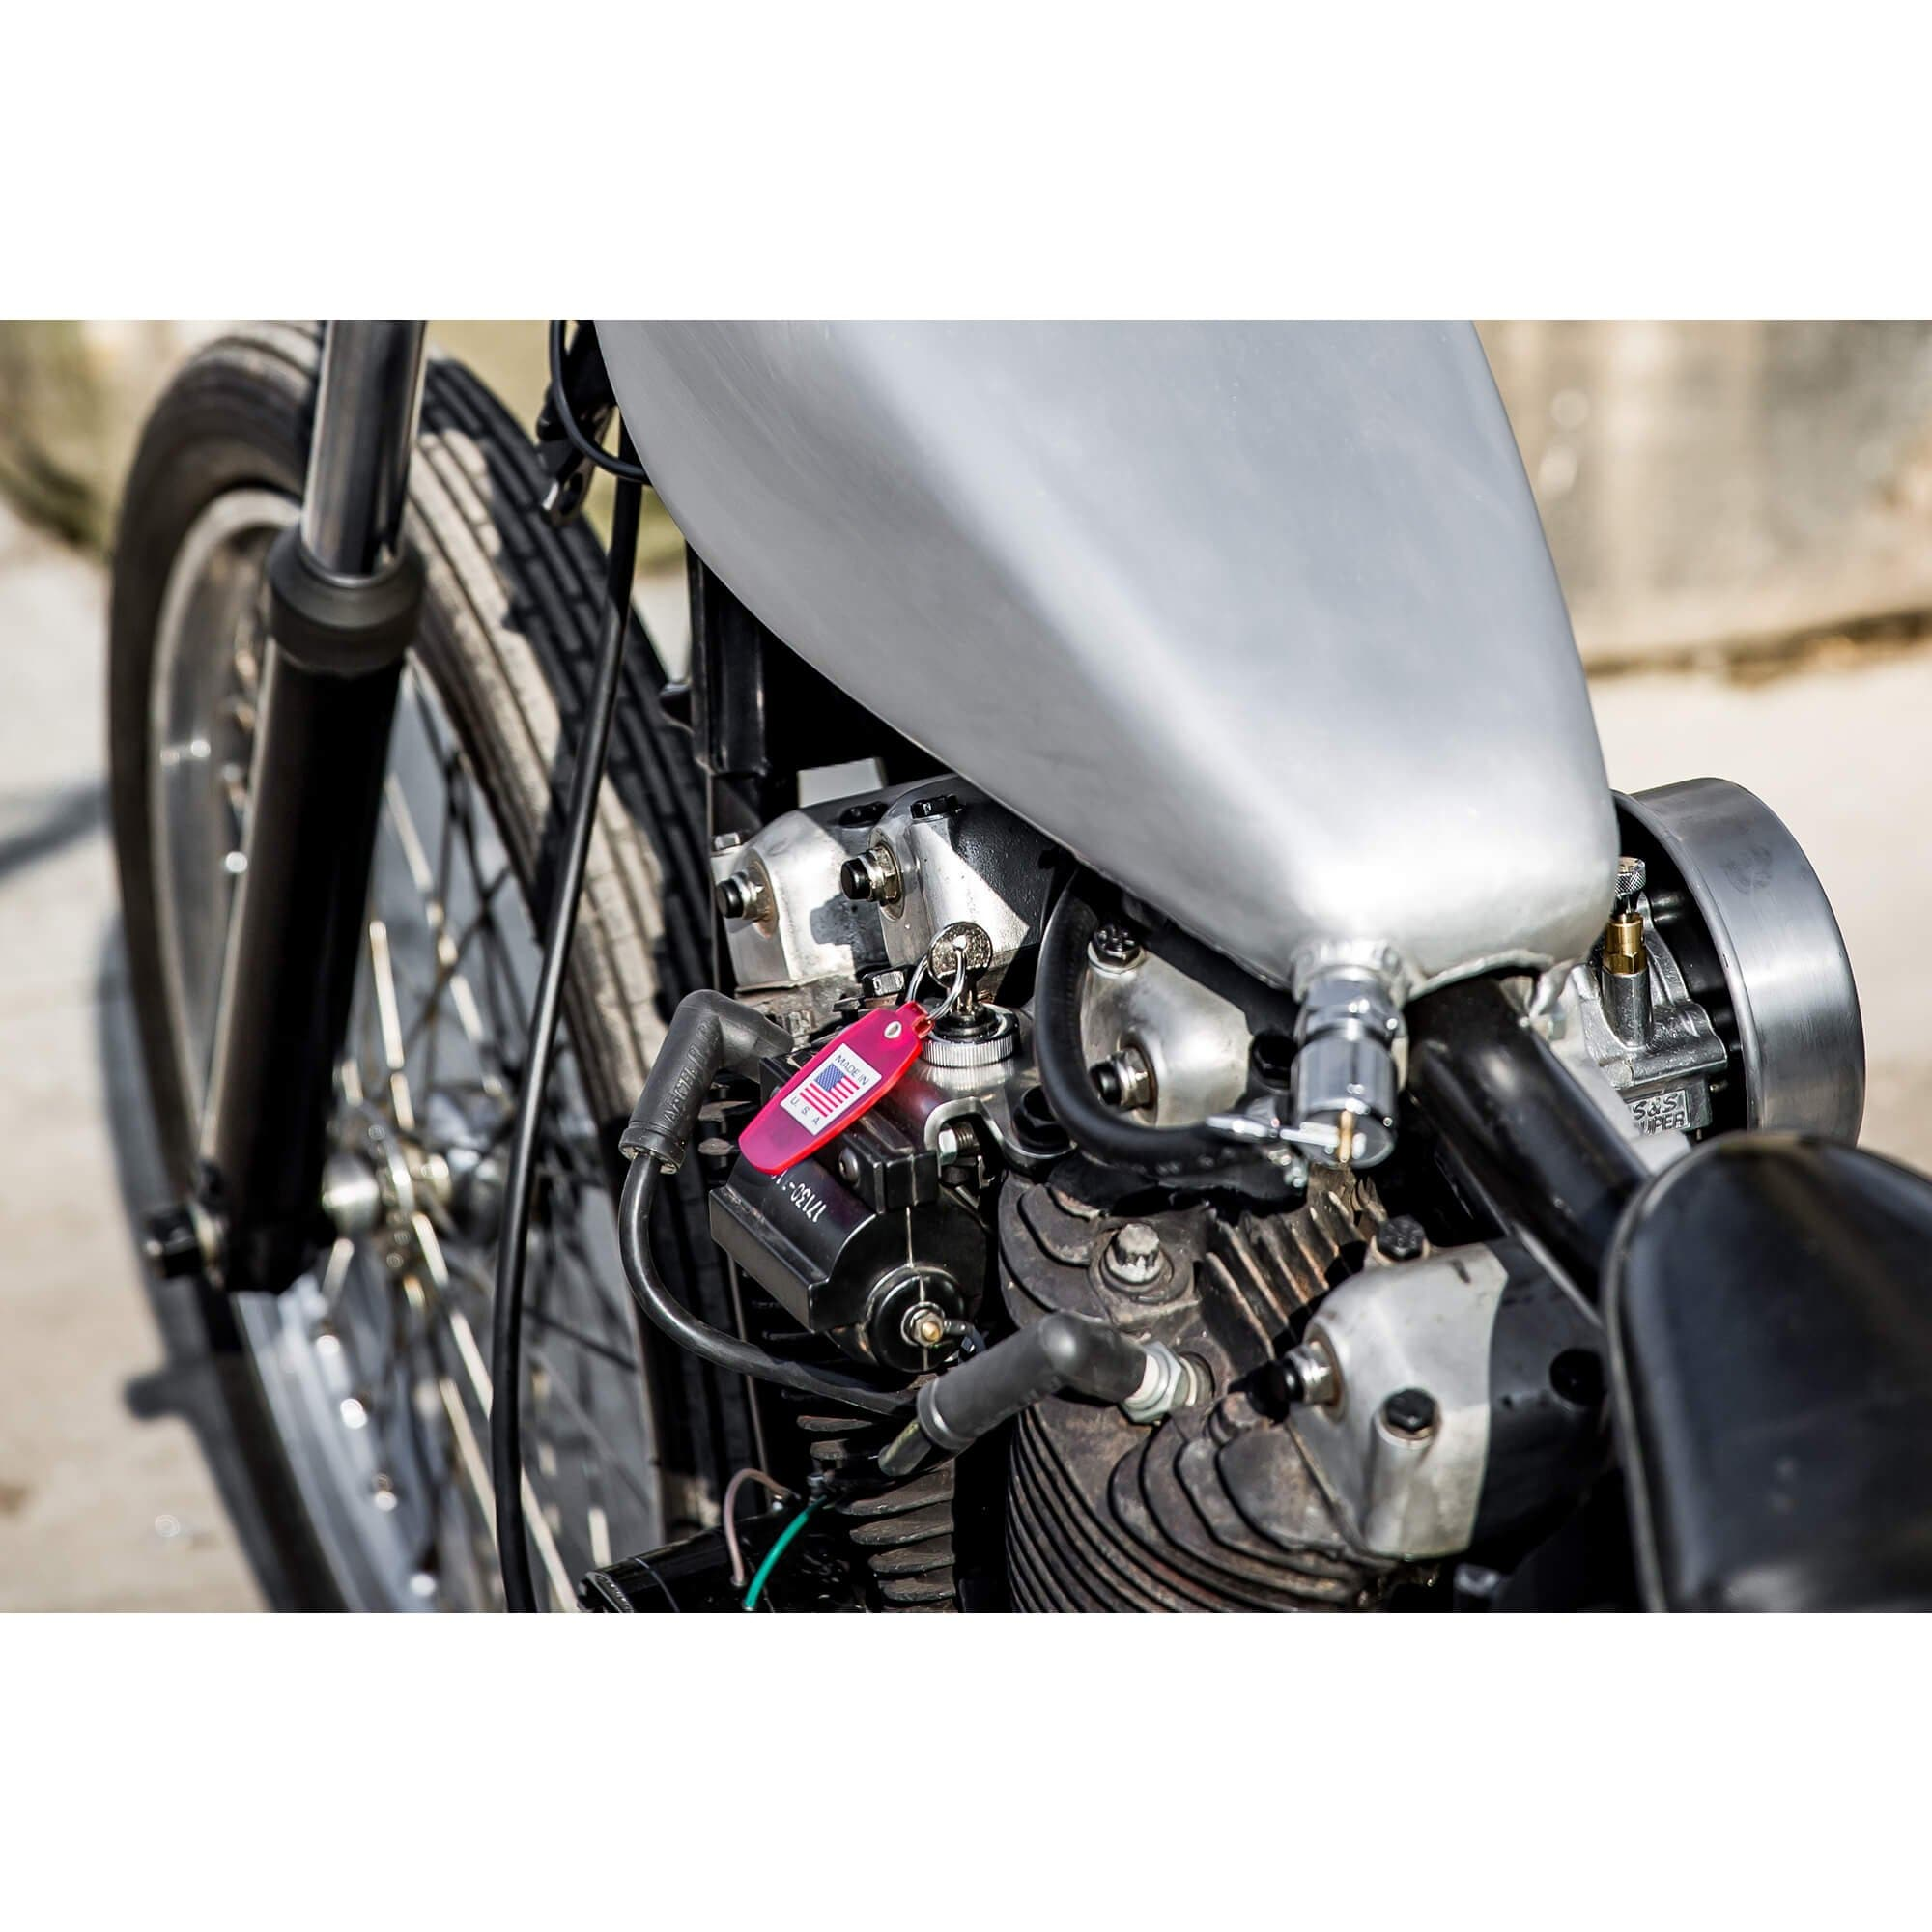 Gasbox Top Motor Mount 1957 1985 Ironhead Sportster Xl With Coil And Crank Key Start Mount Lowbrow Customs